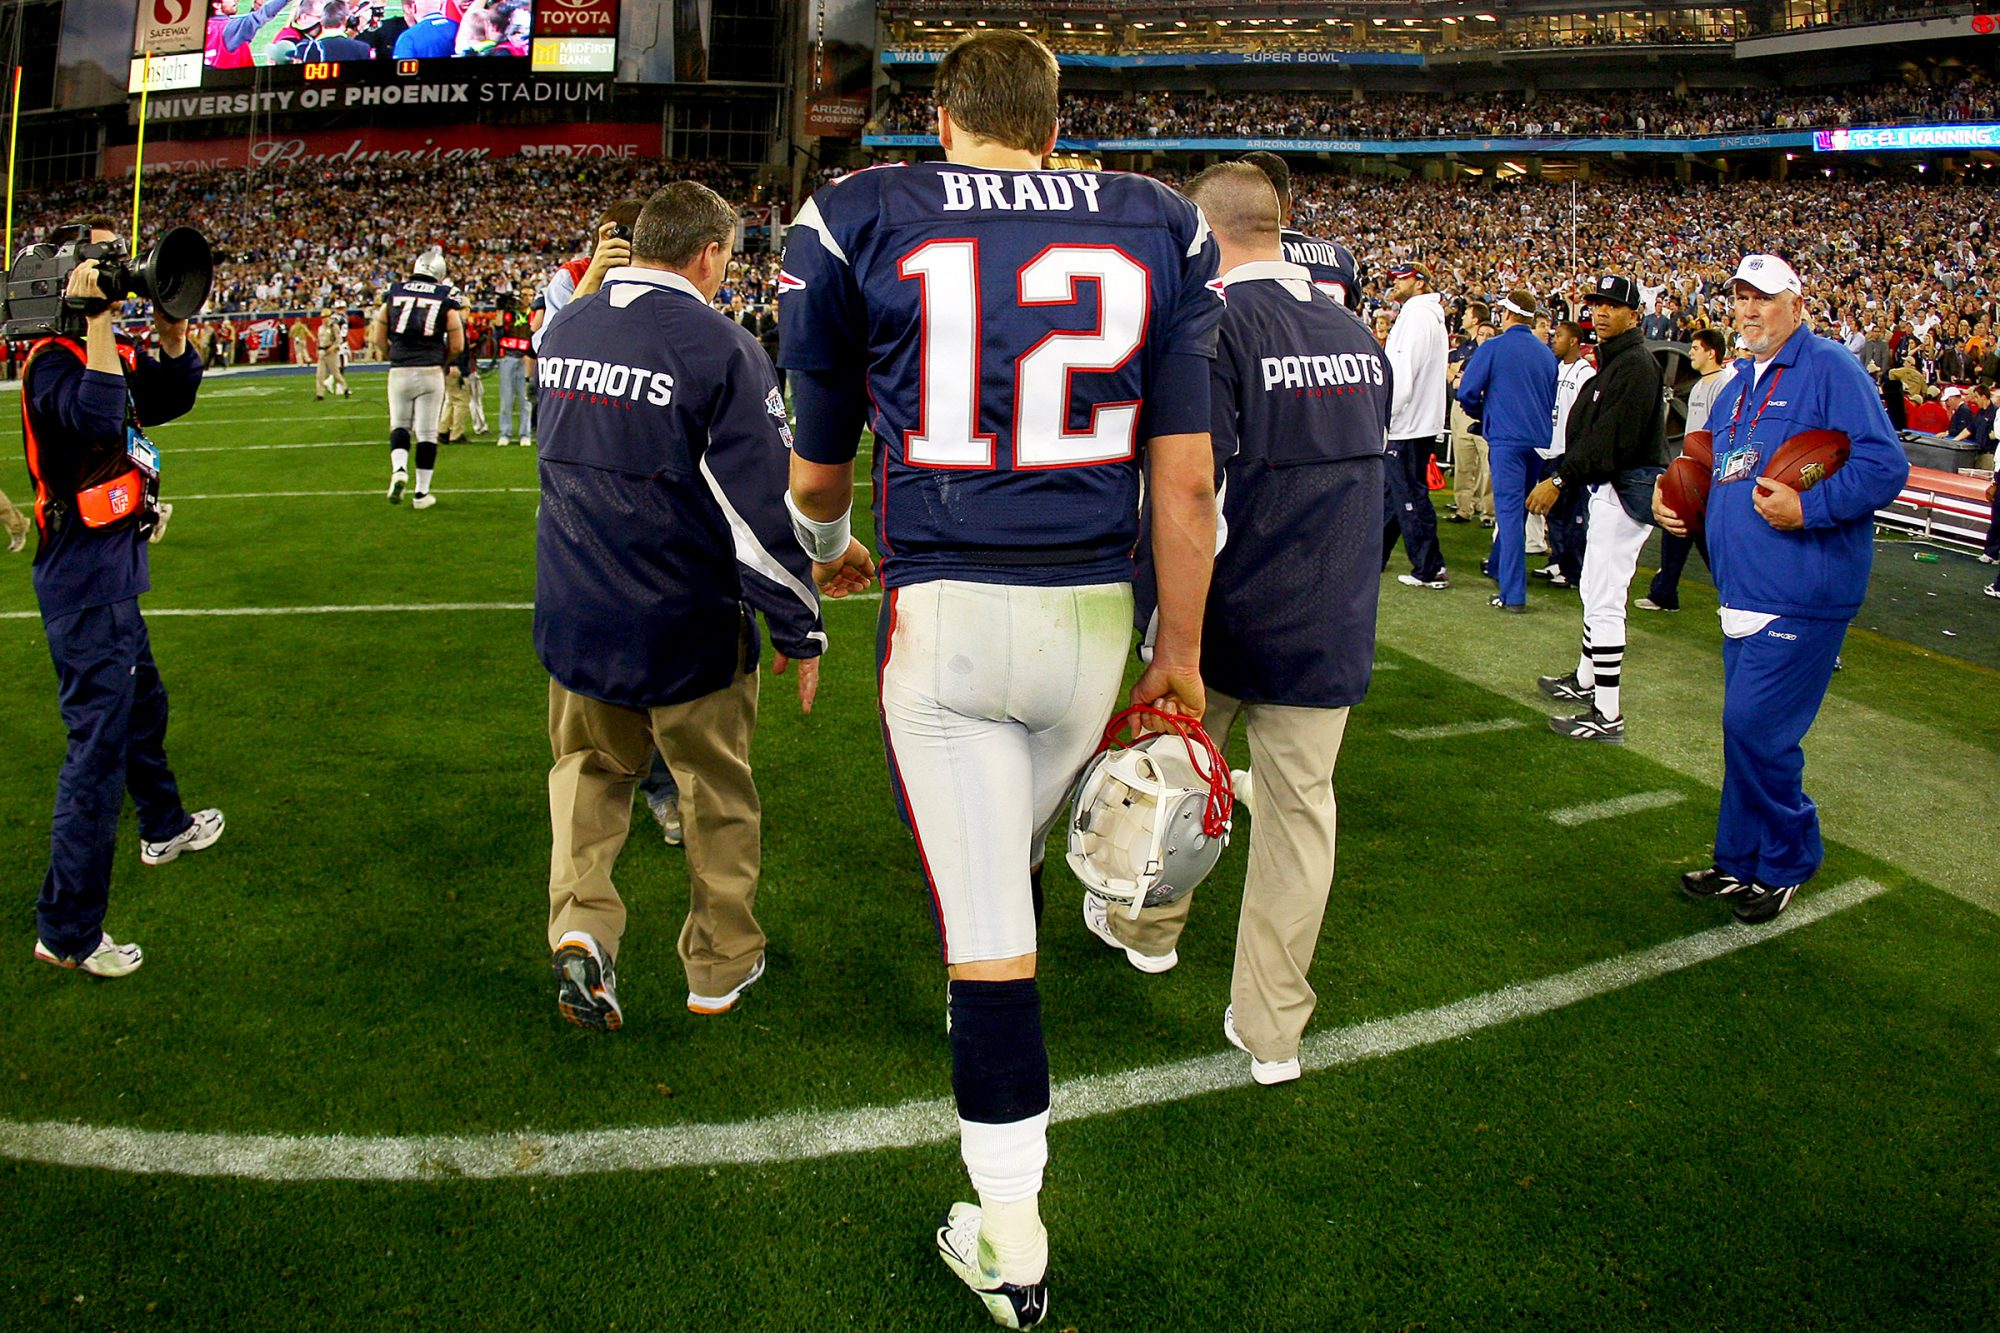 Tom Brady #12 of the New England Patriots walks off the field after losing to the New York Giants 17-14 during Super Bowl XLII on February 3, 2008 at the University of Phoenix Stadium in Glendale